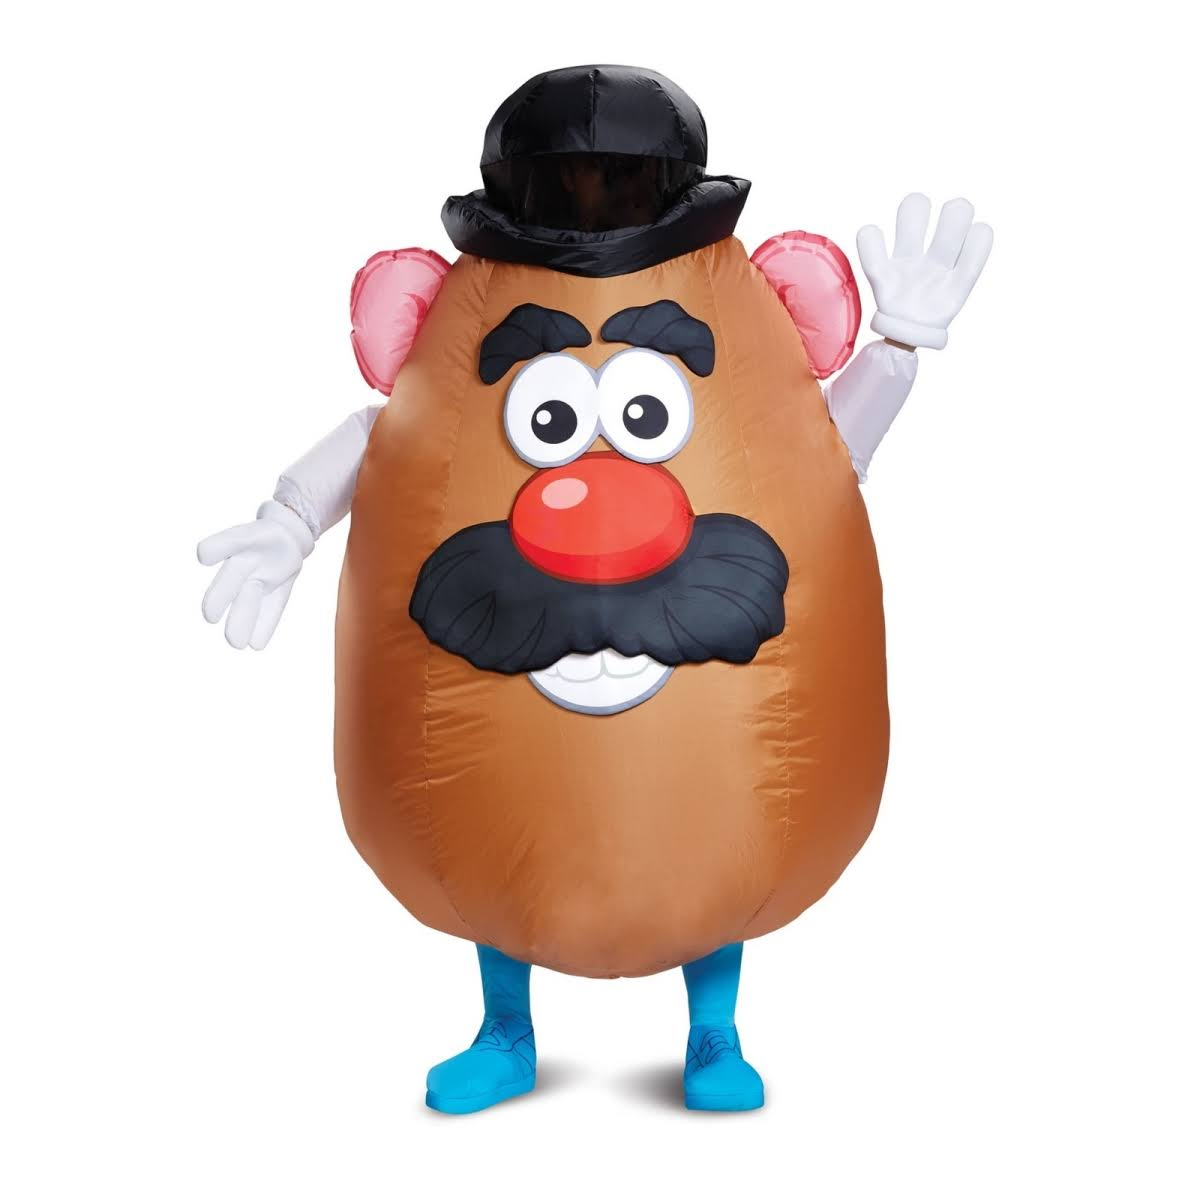 Inflatable Mr Potato Costume - Toy Story 4